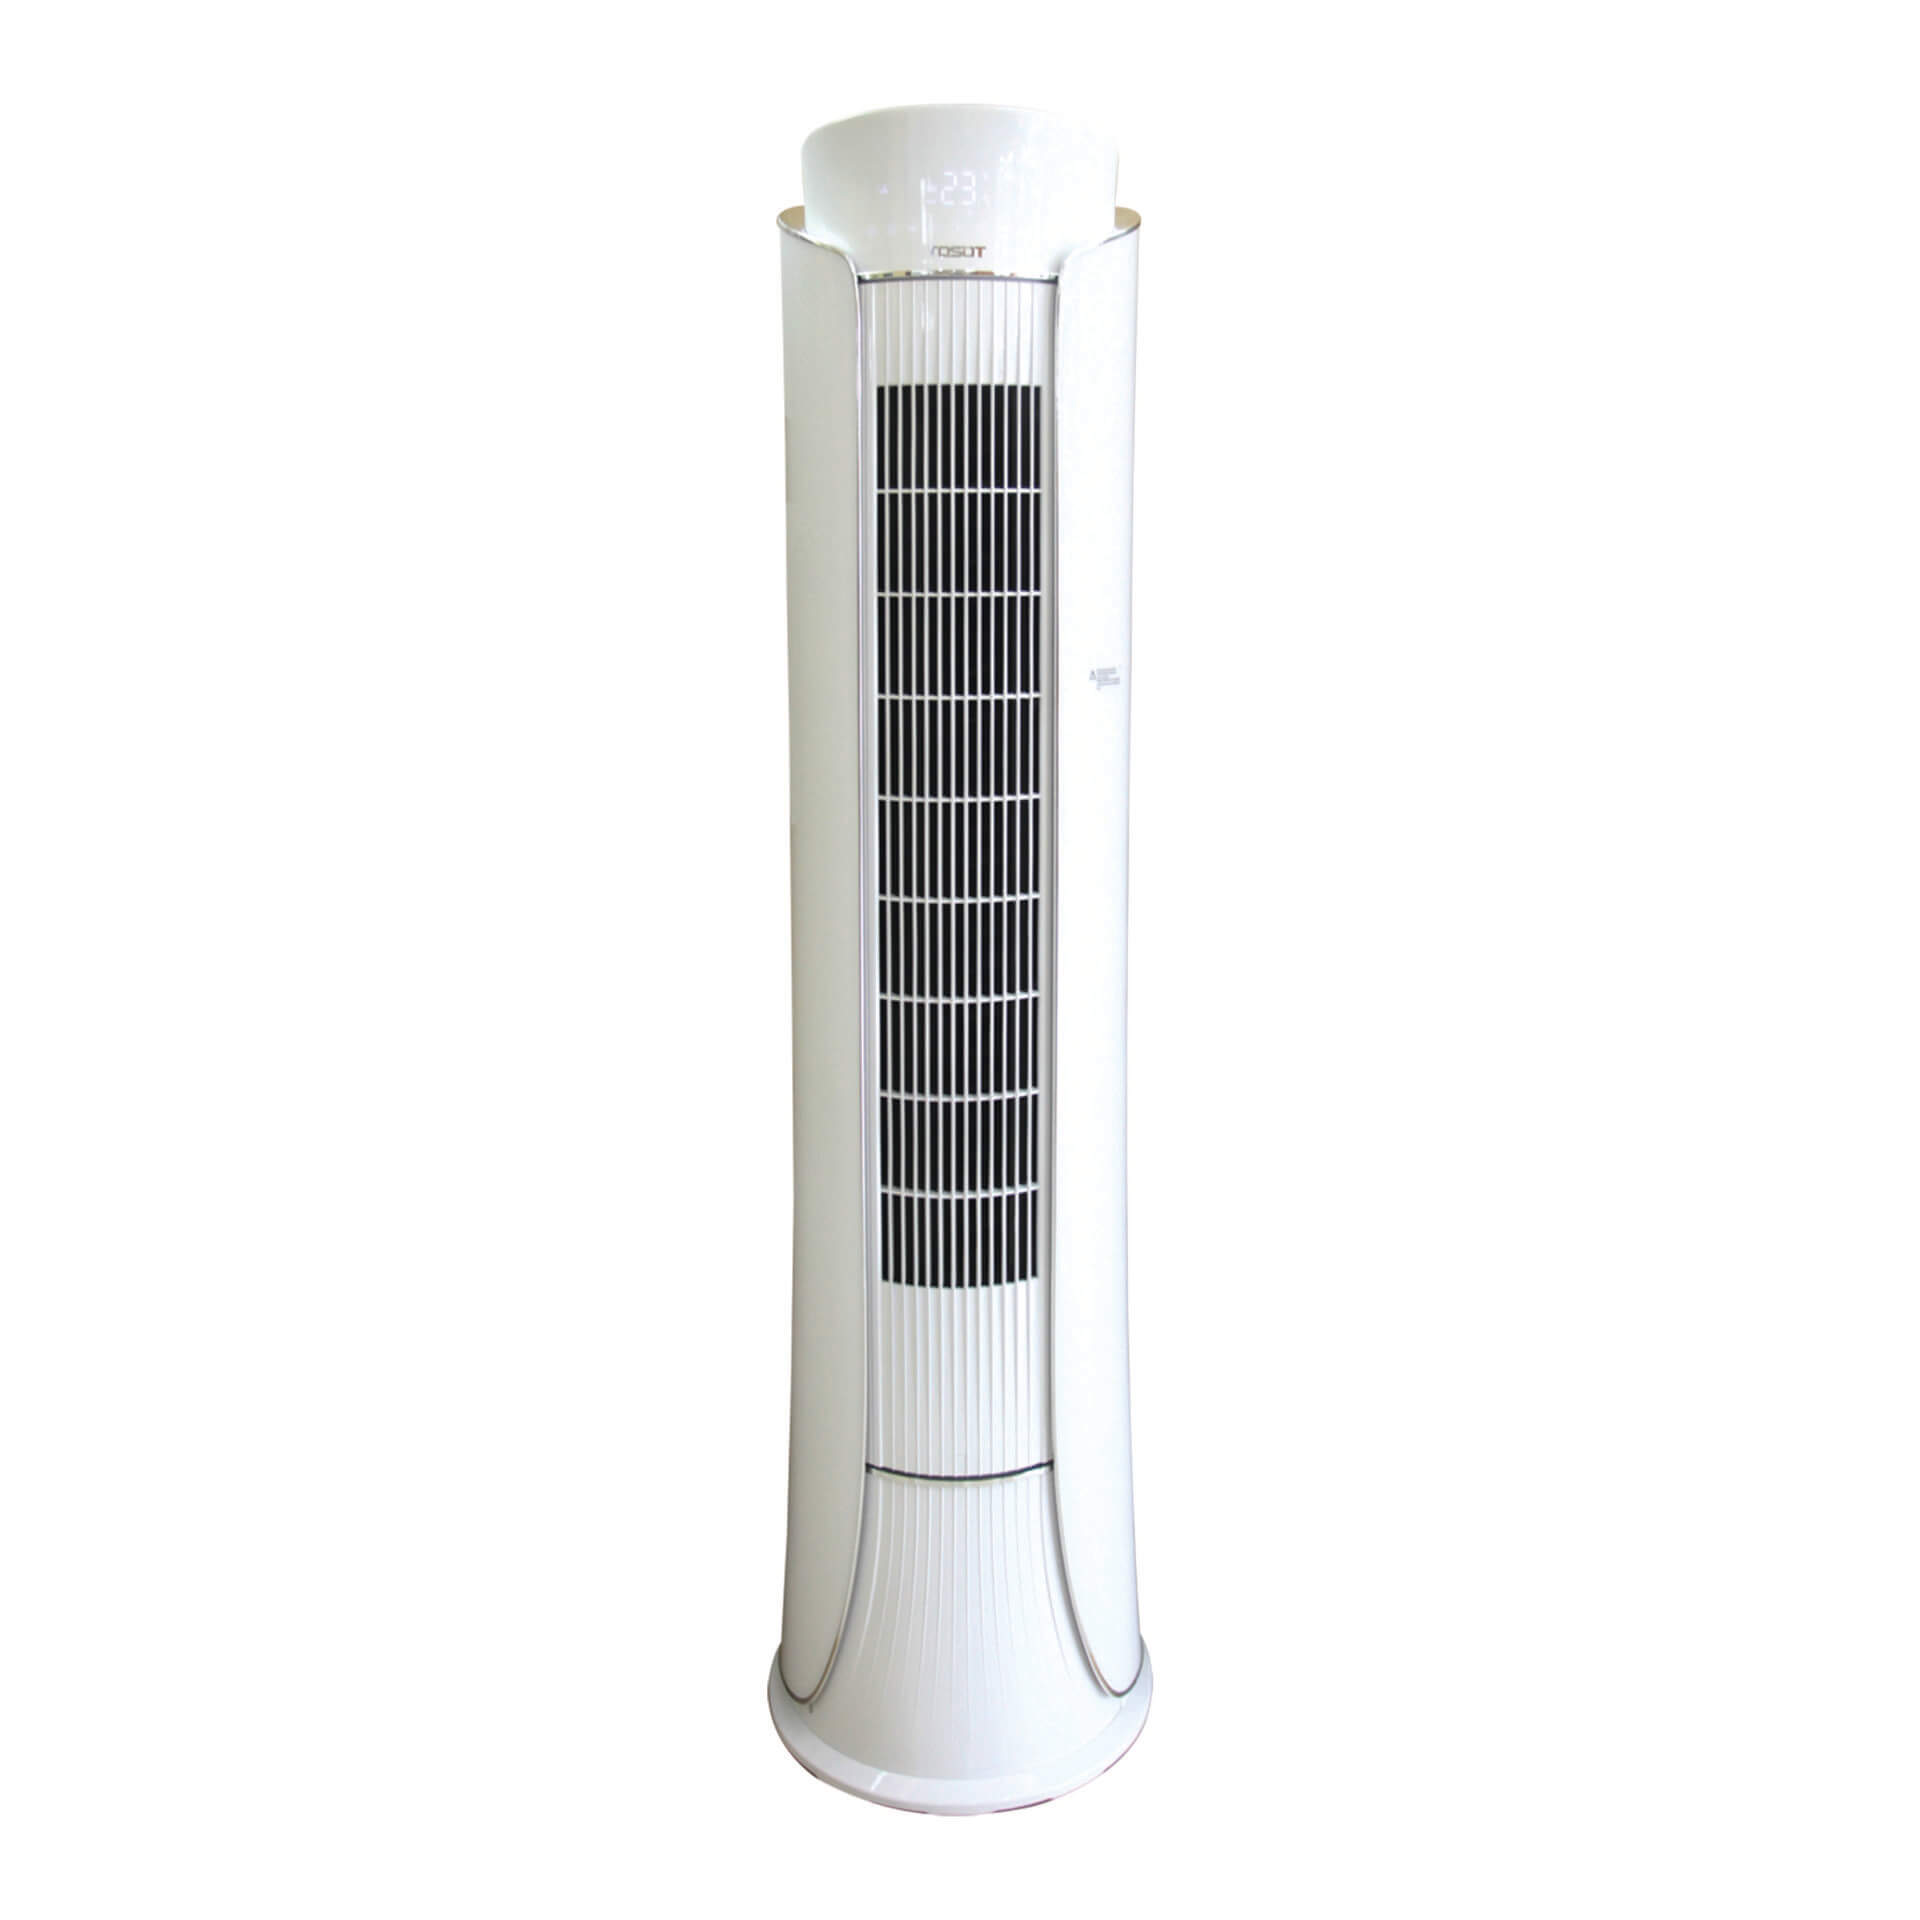 TOSOT Floor Standing Air-Conditioner Is The Best Cooling